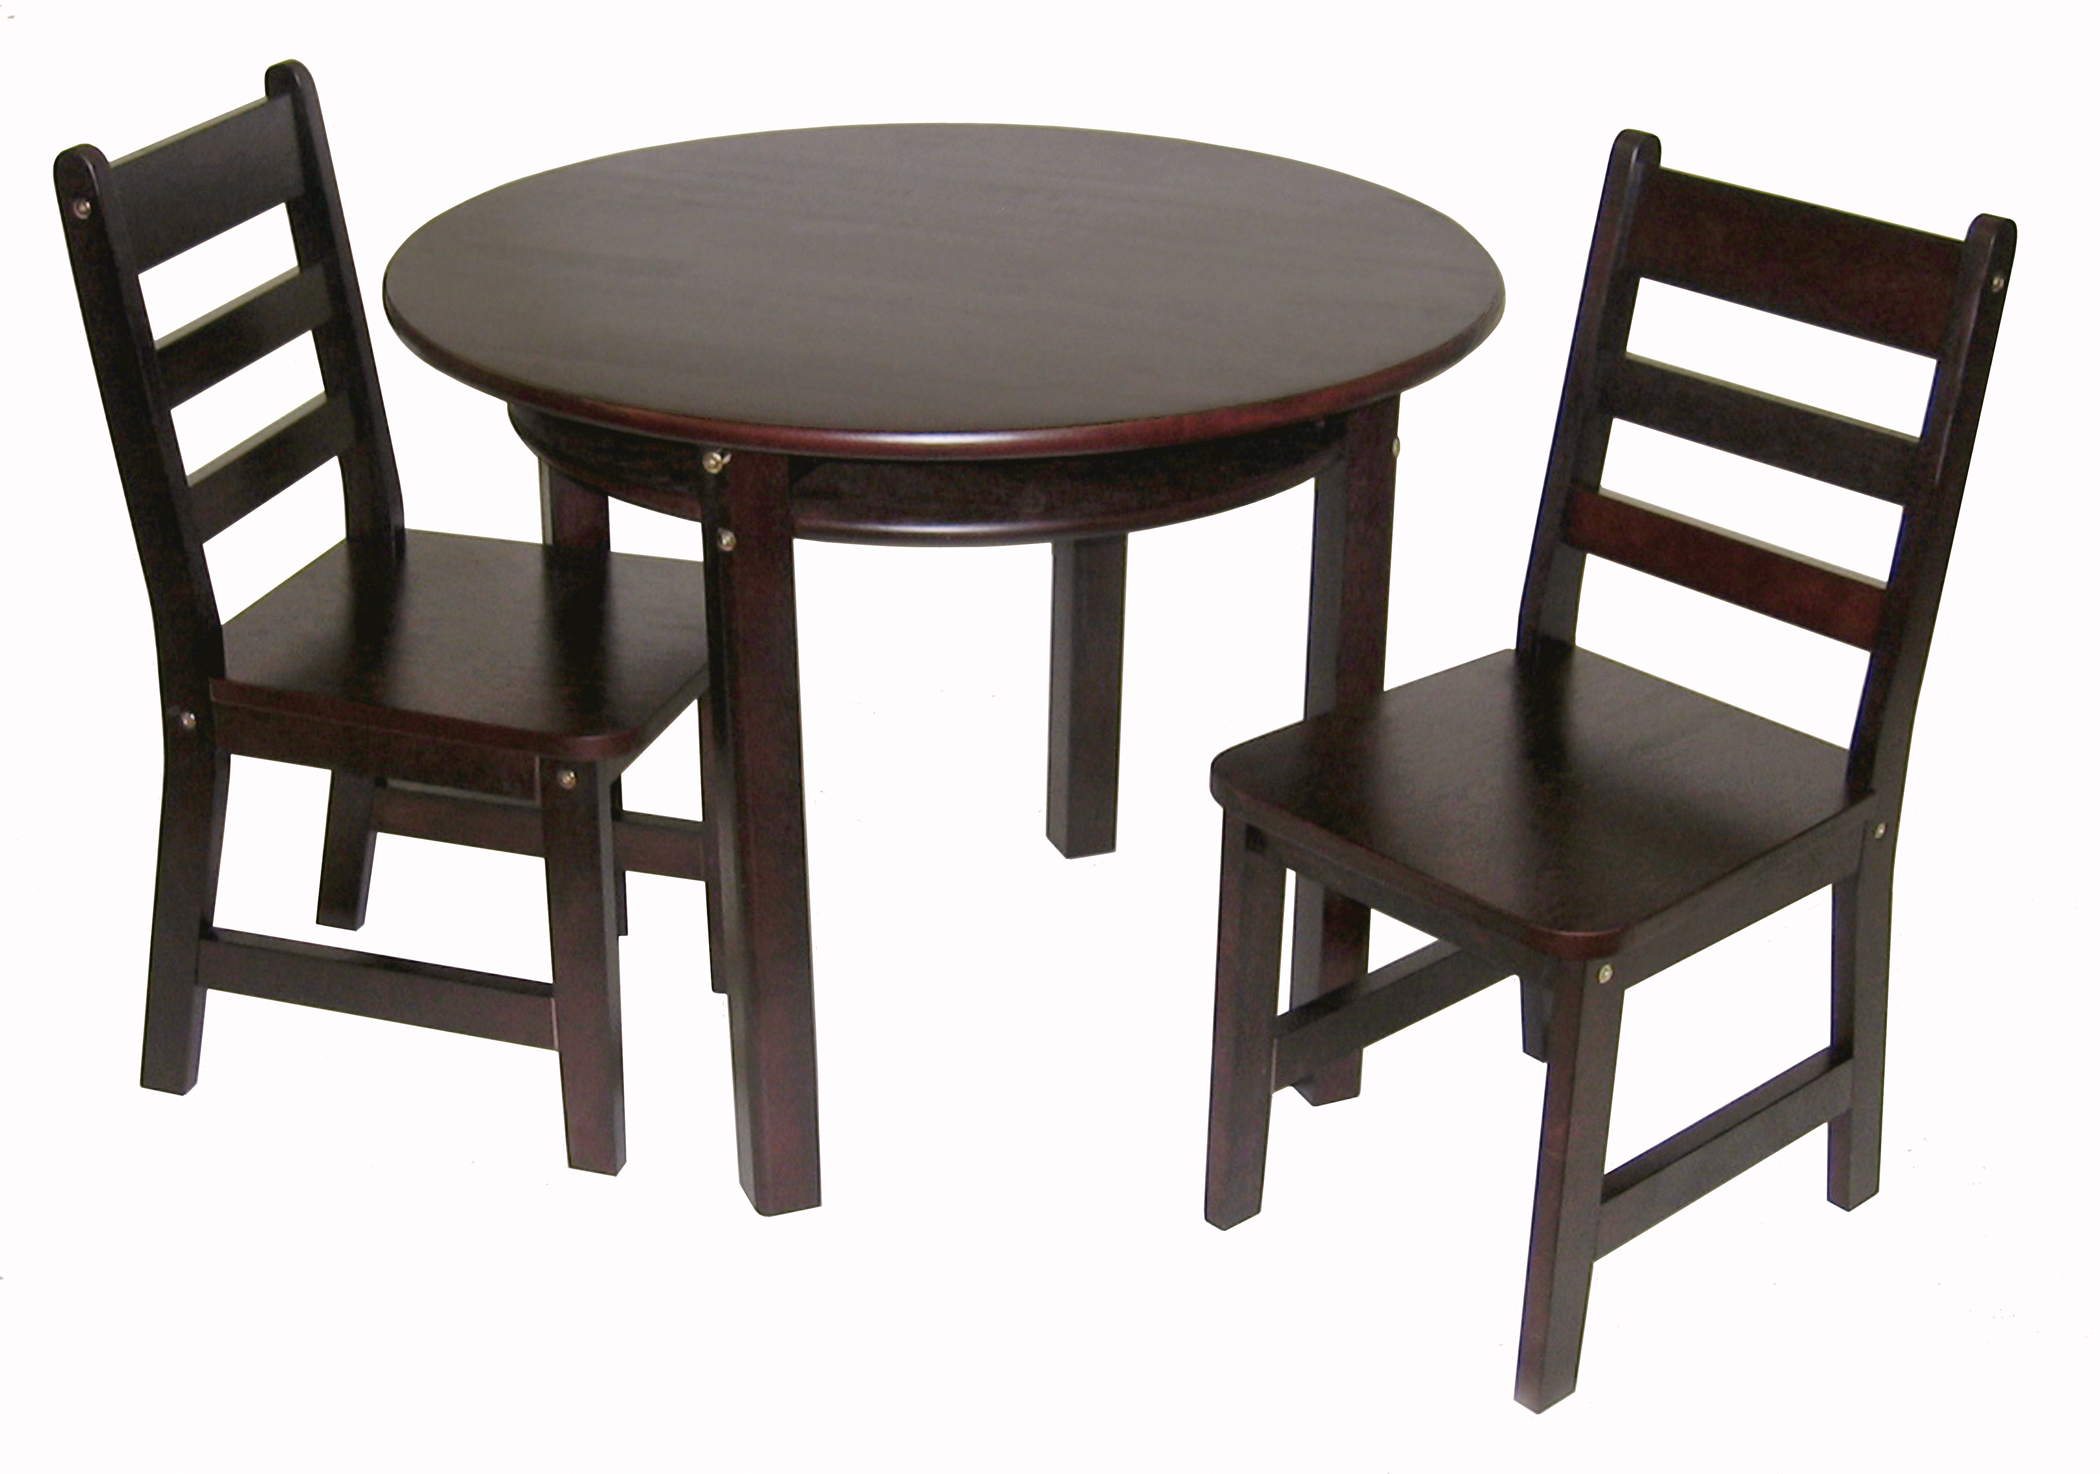 Child s Round Table with Shelf & 2 Chairs Espresso Finish